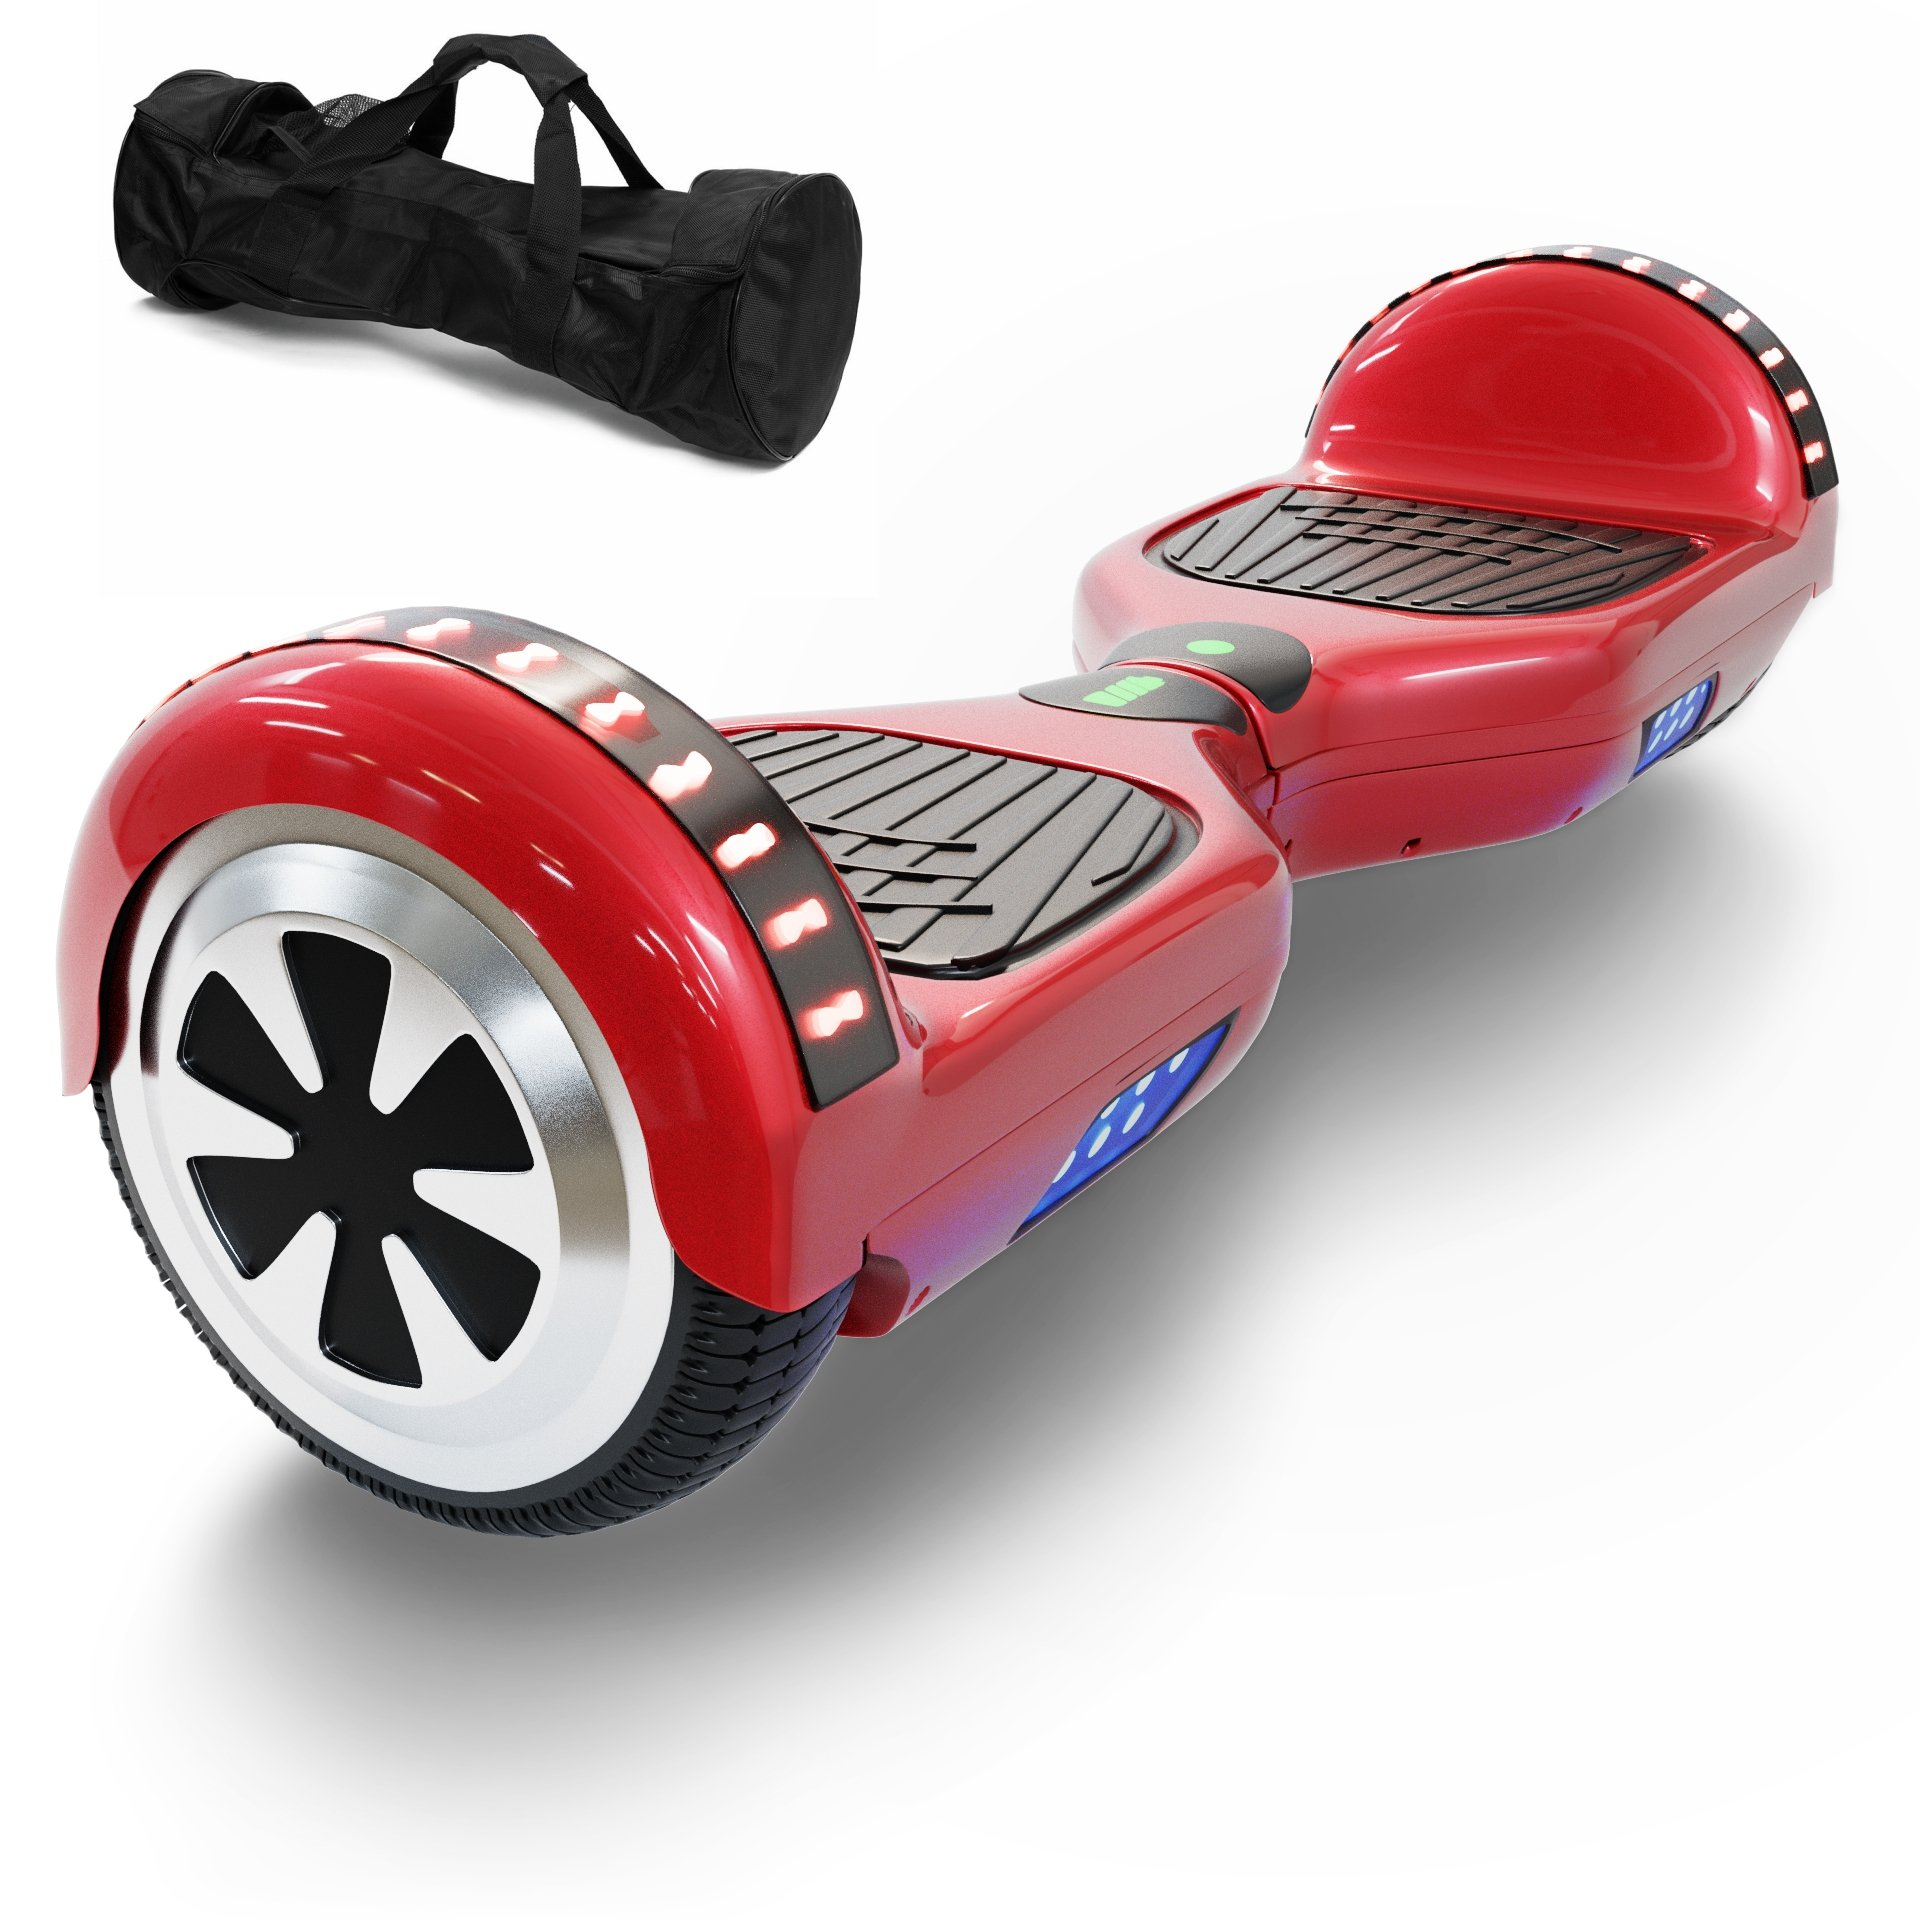 Hoverboard Self Balancing Scooter UL 2272 Certified with Powerful Bluetooth Speaker, Cool LED lights and FREE Portable Carrying Bag (Lava Red) by CXInWalk